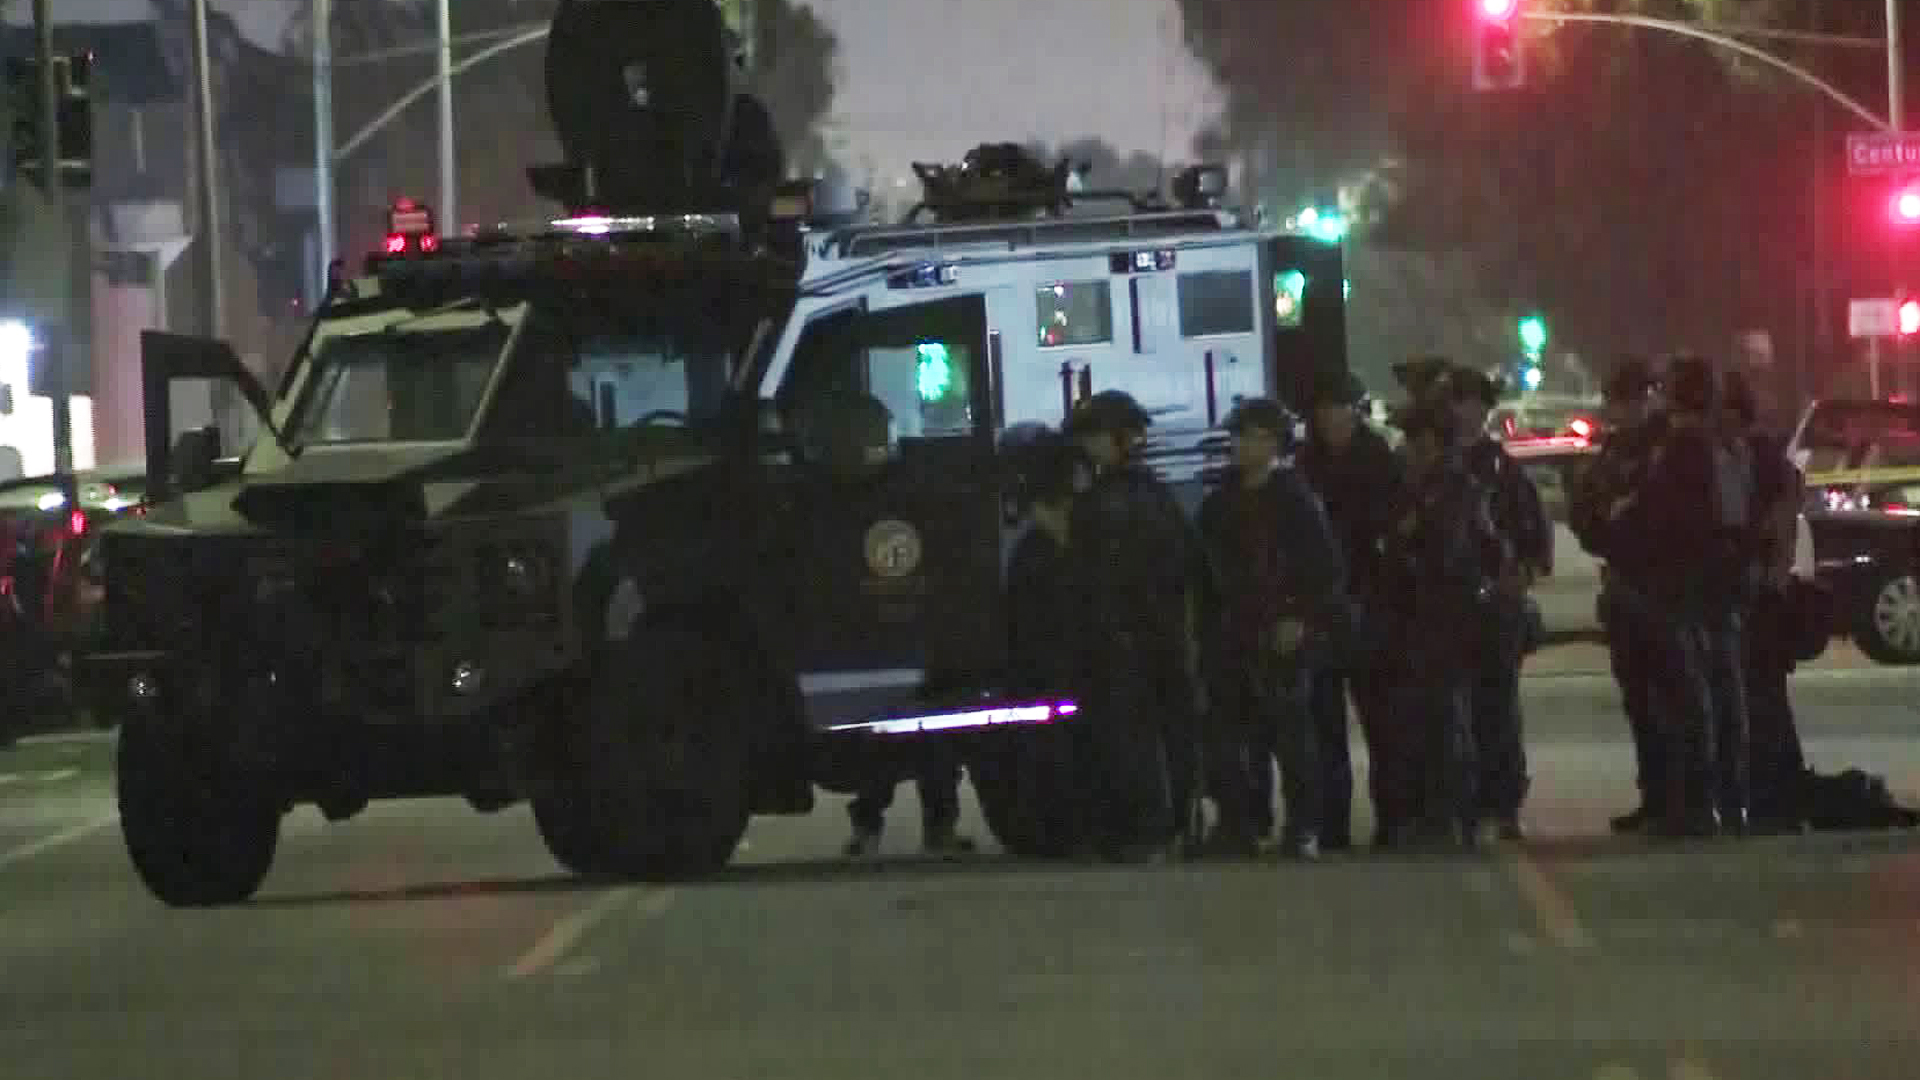 A SWAT team responds to a barricade situation in South Los Angeles on Oct. 14, 2019. (Credit: KTLA)